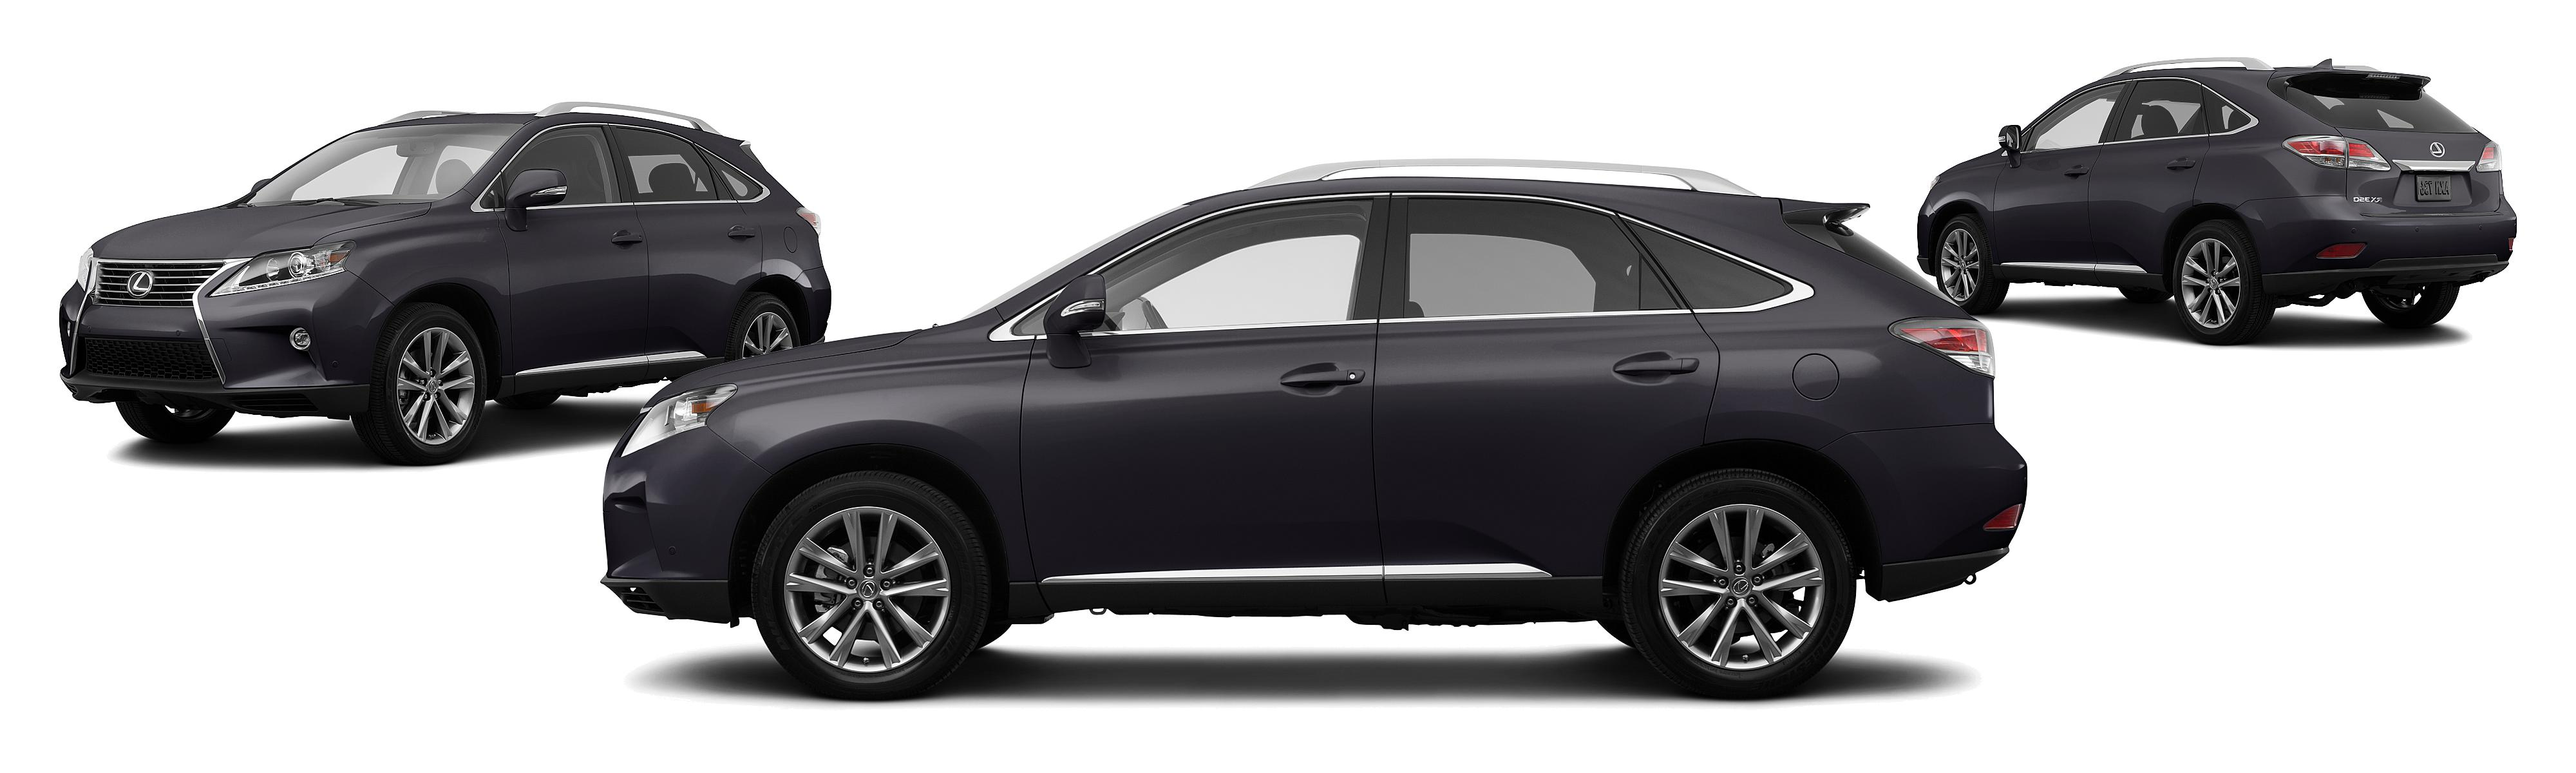 2015 Lexus RX 350 4dr SUV Research GrooveCar